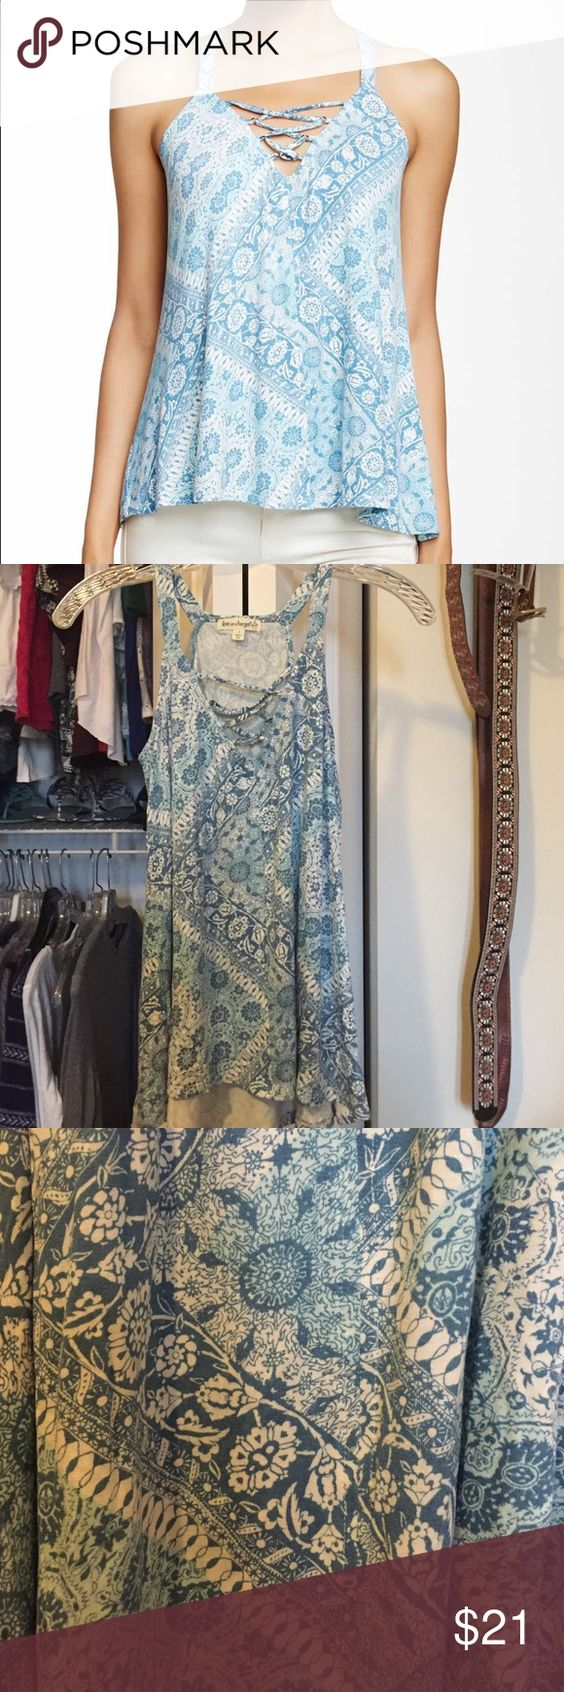 New blue floral tank! Super cute, brand new lace up tank! Wonderful stretchy material with an array of blues and whites. The neck line is unique and super flattering. love on a hanger Tops Tank Tops